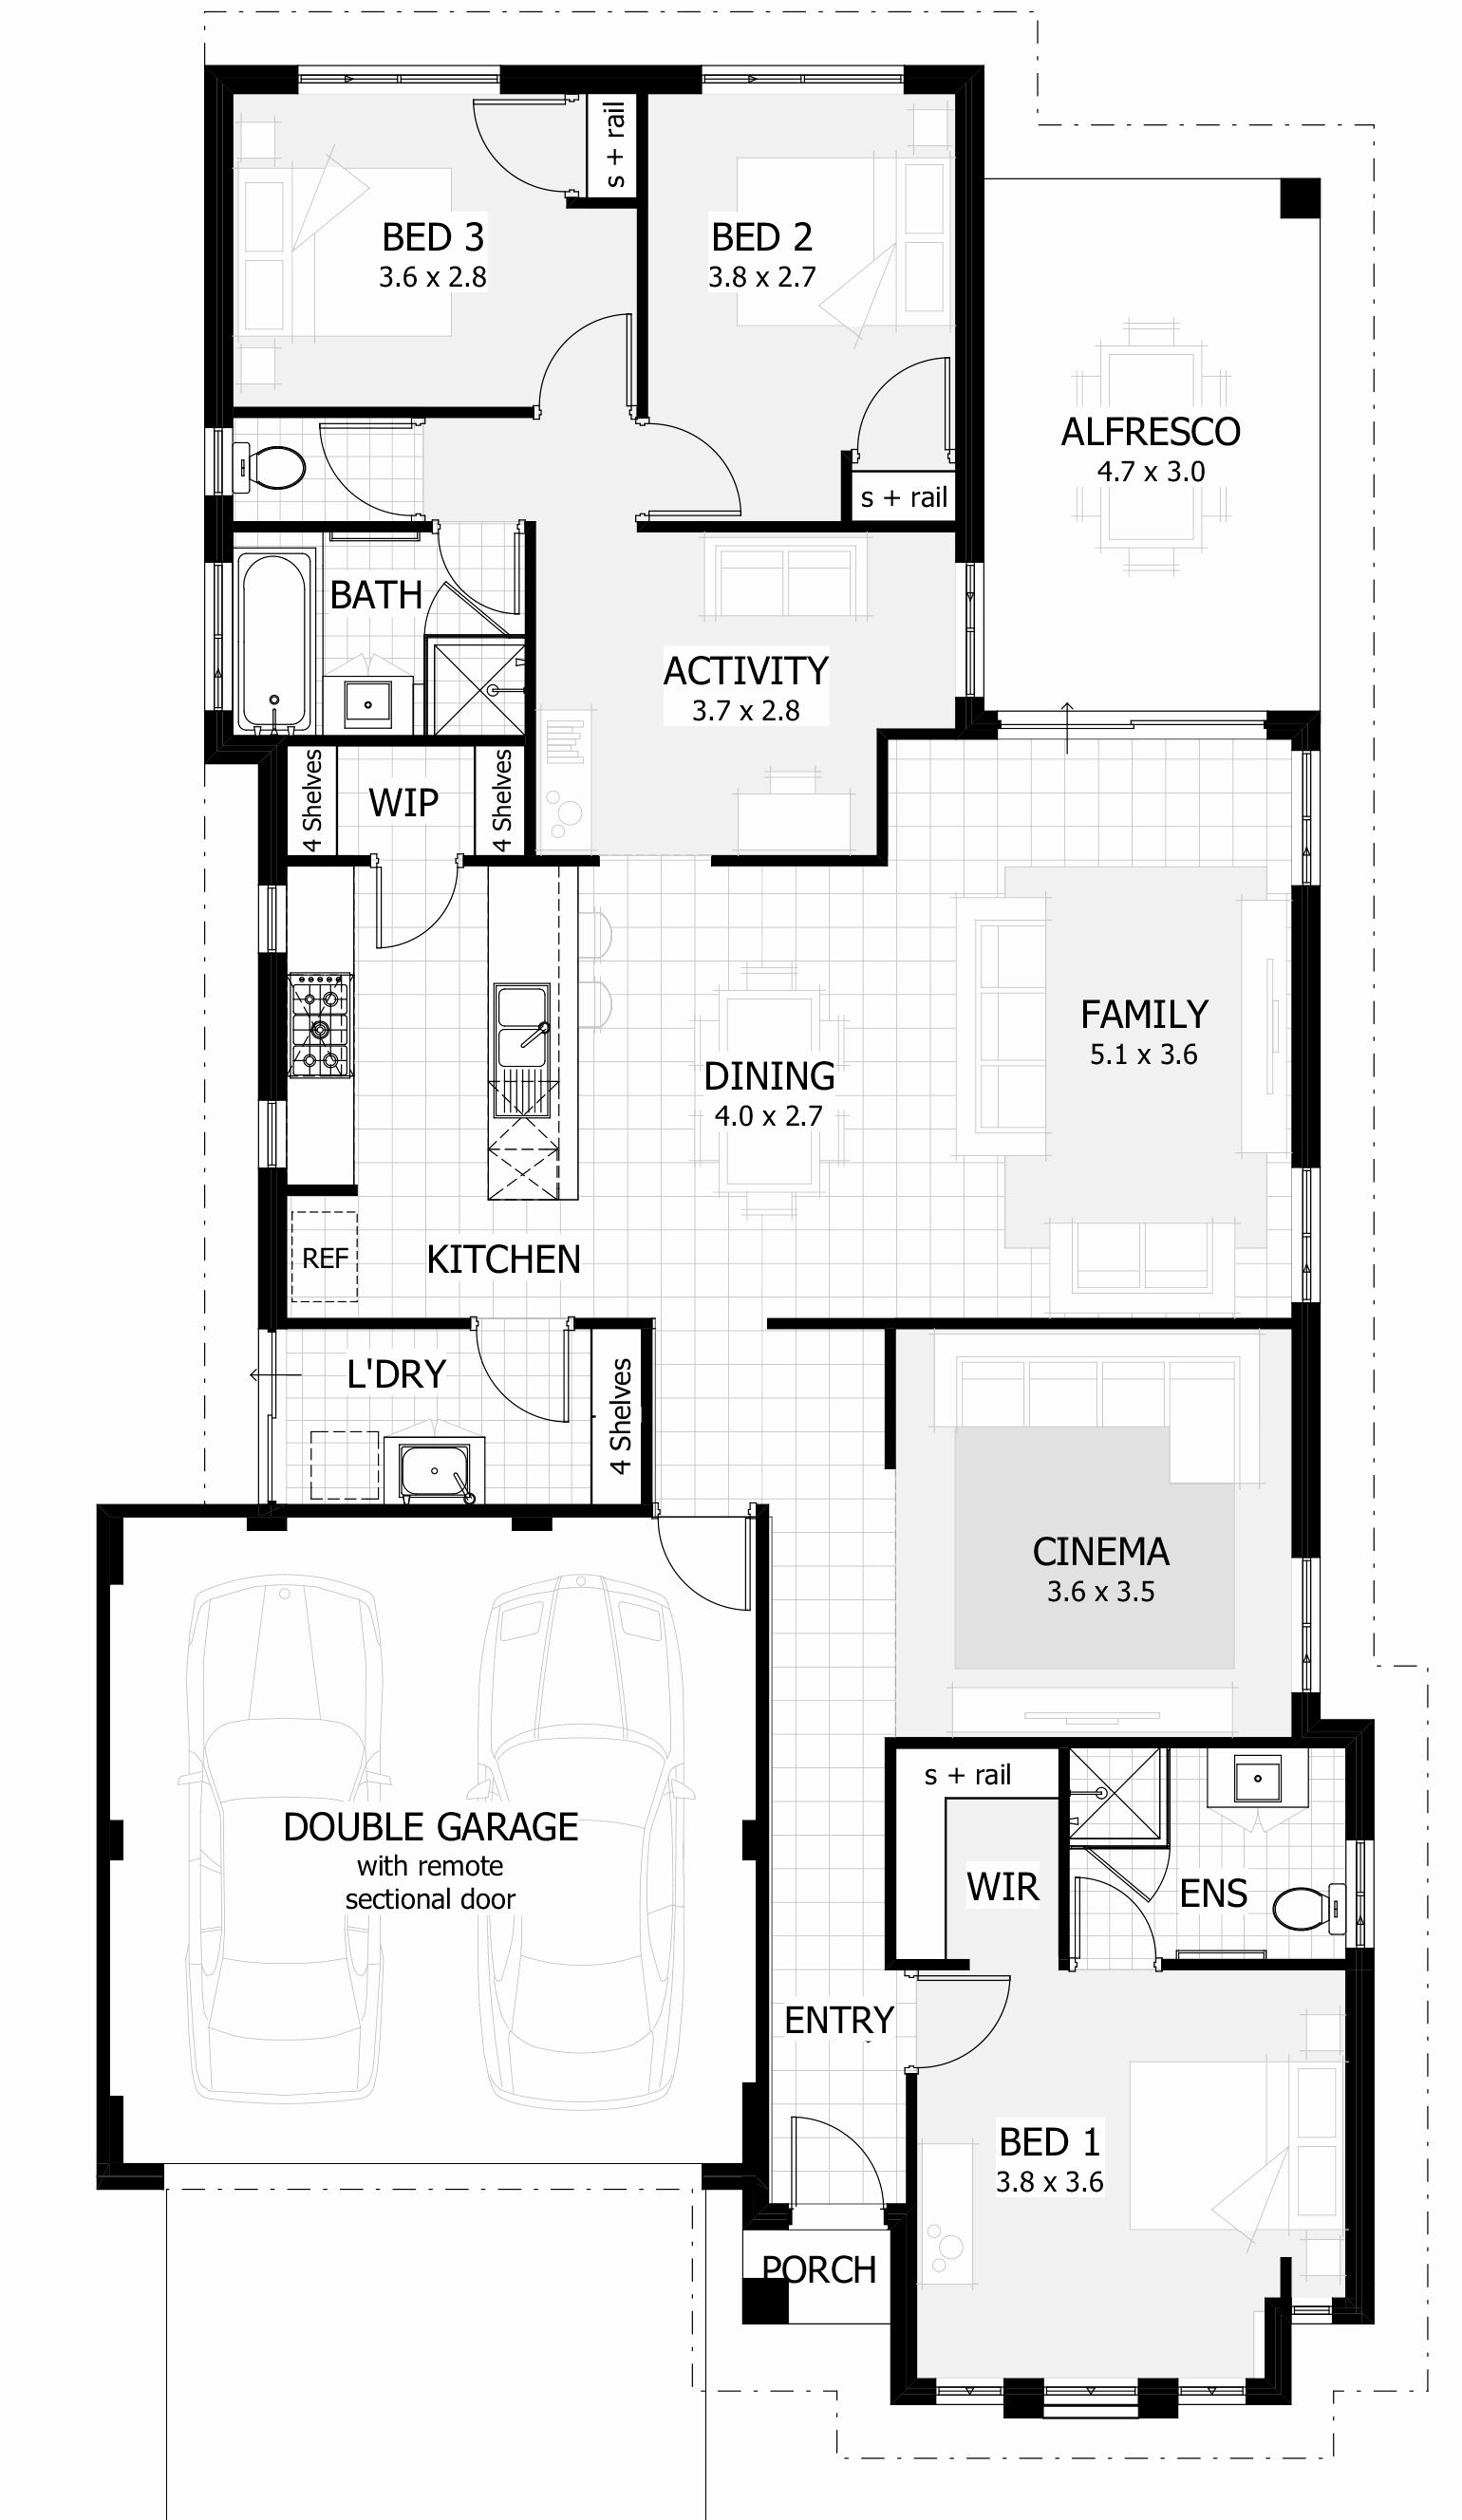 bedroom house plans with garage south africa also news to go rh pinterest